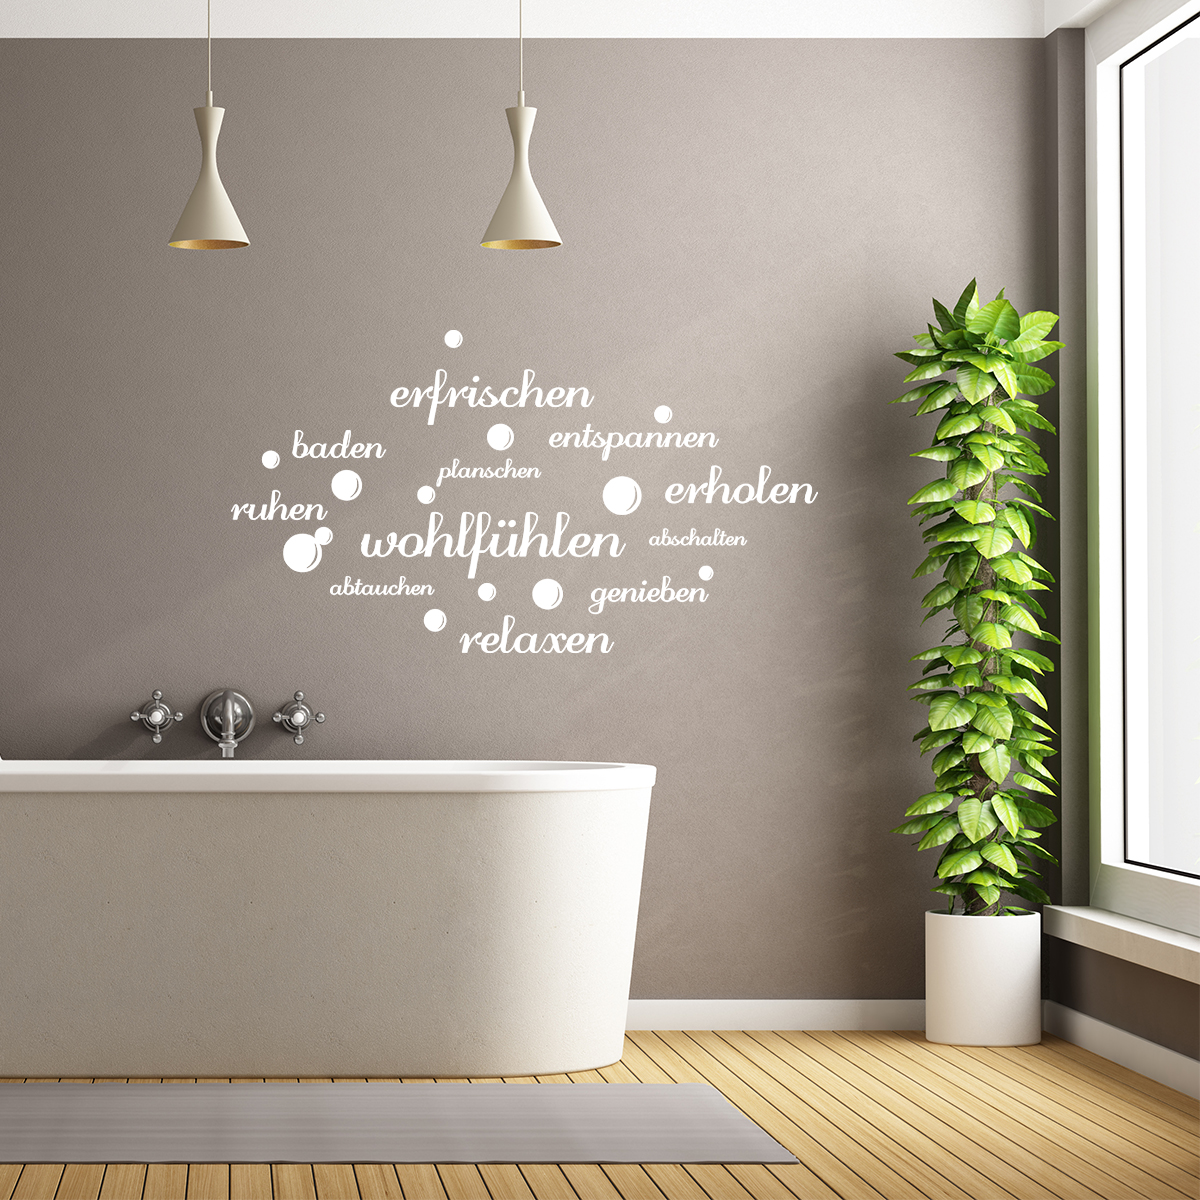 sticker citation salle de bain efrischen entspannen baden stickers citations allemand. Black Bedroom Furniture Sets. Home Design Ideas